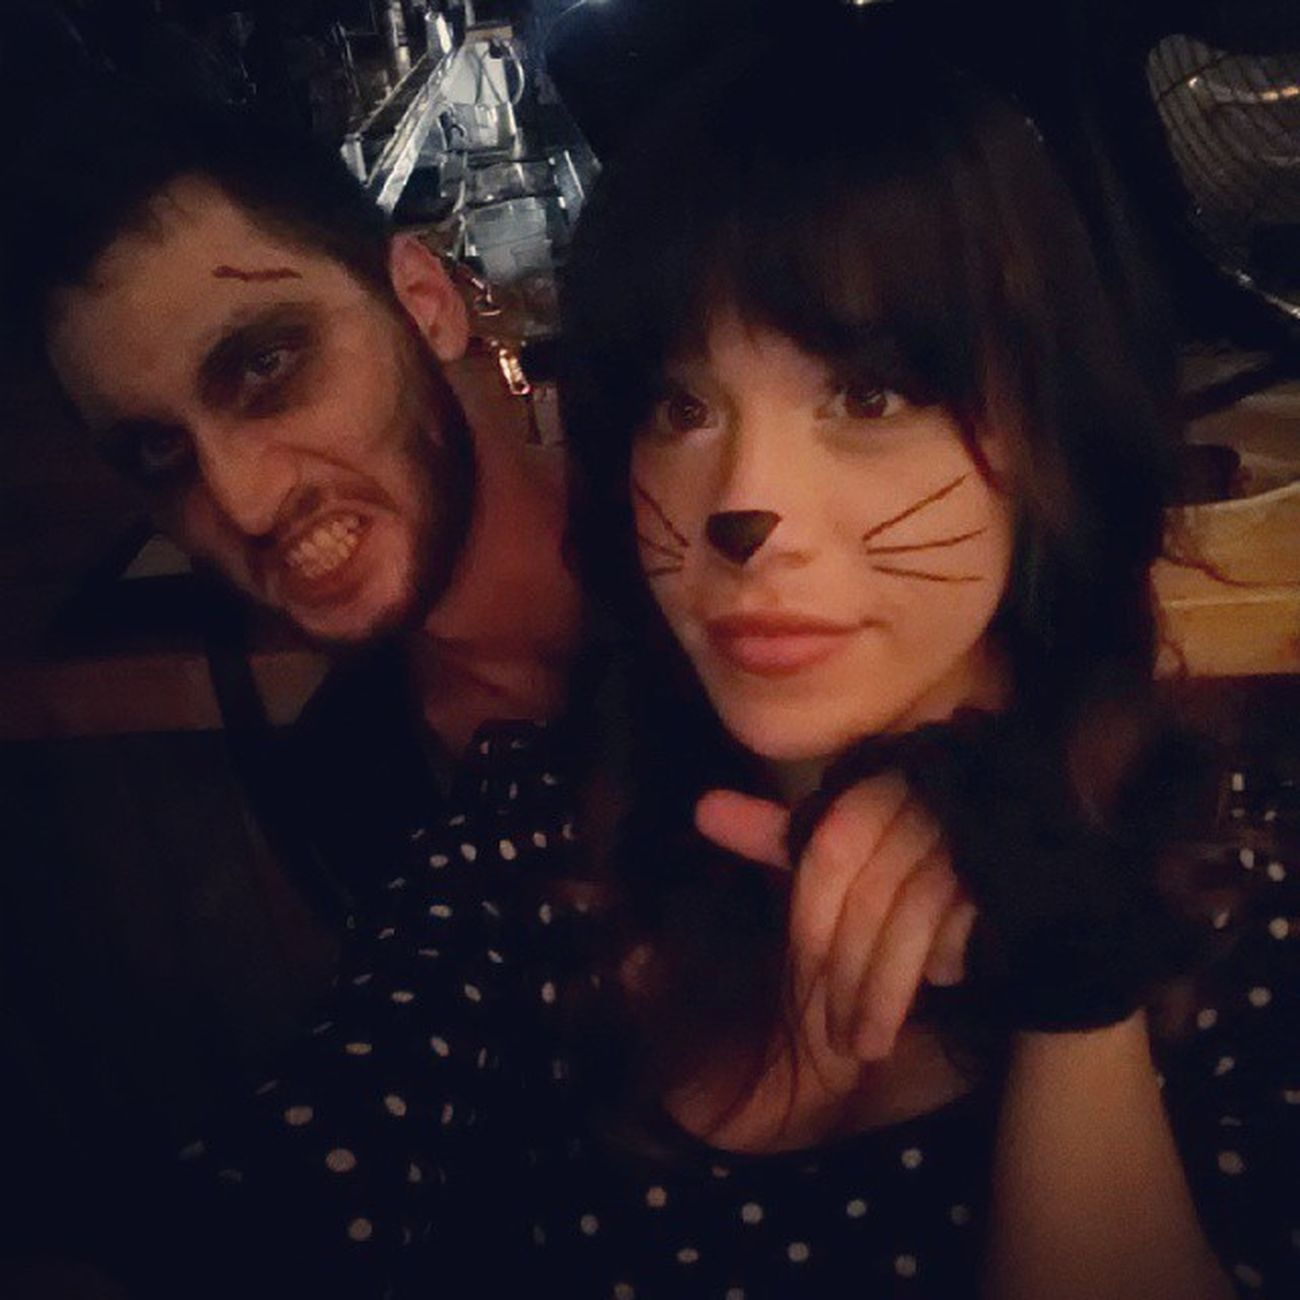 Me and my zombie love last night at the Freemancajuncafe ;)